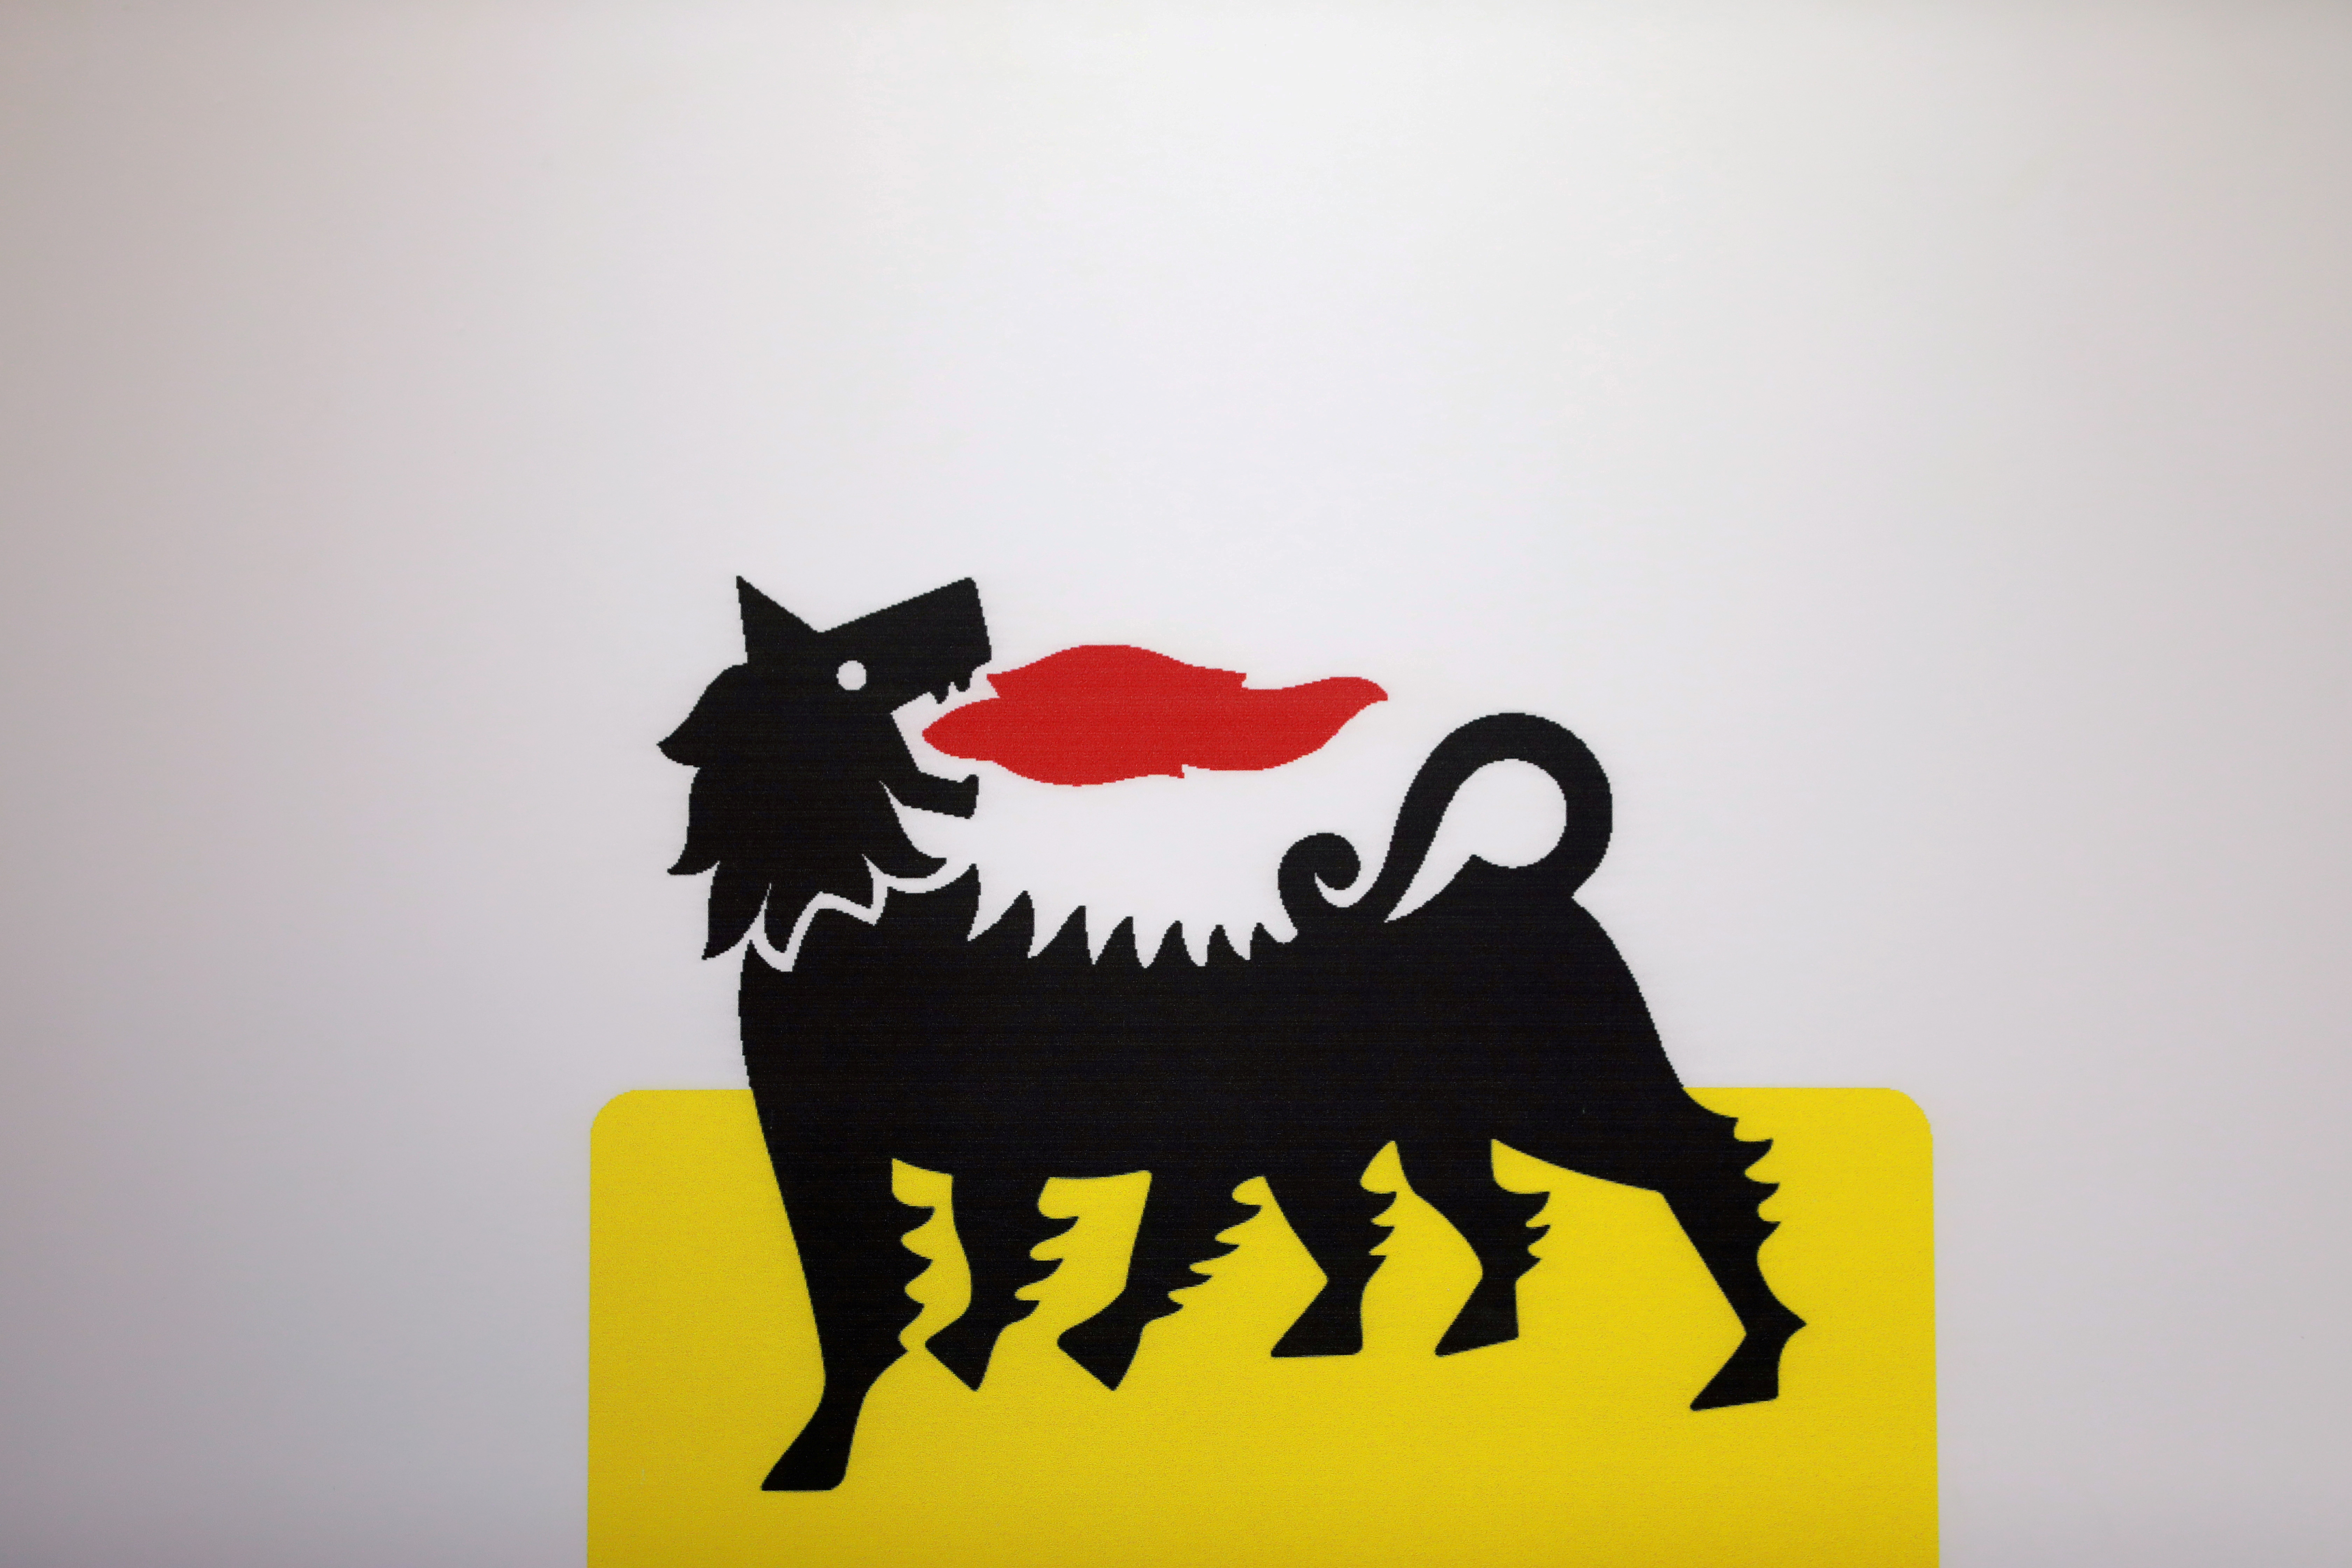 The logo of Italian energy company Eni is seen at the booth of Eni during the Nigeria International Petroleum Summit in Abuja, Nigeria February 10, 2020. REUTERS/Afolabi Sotunde/File Photo